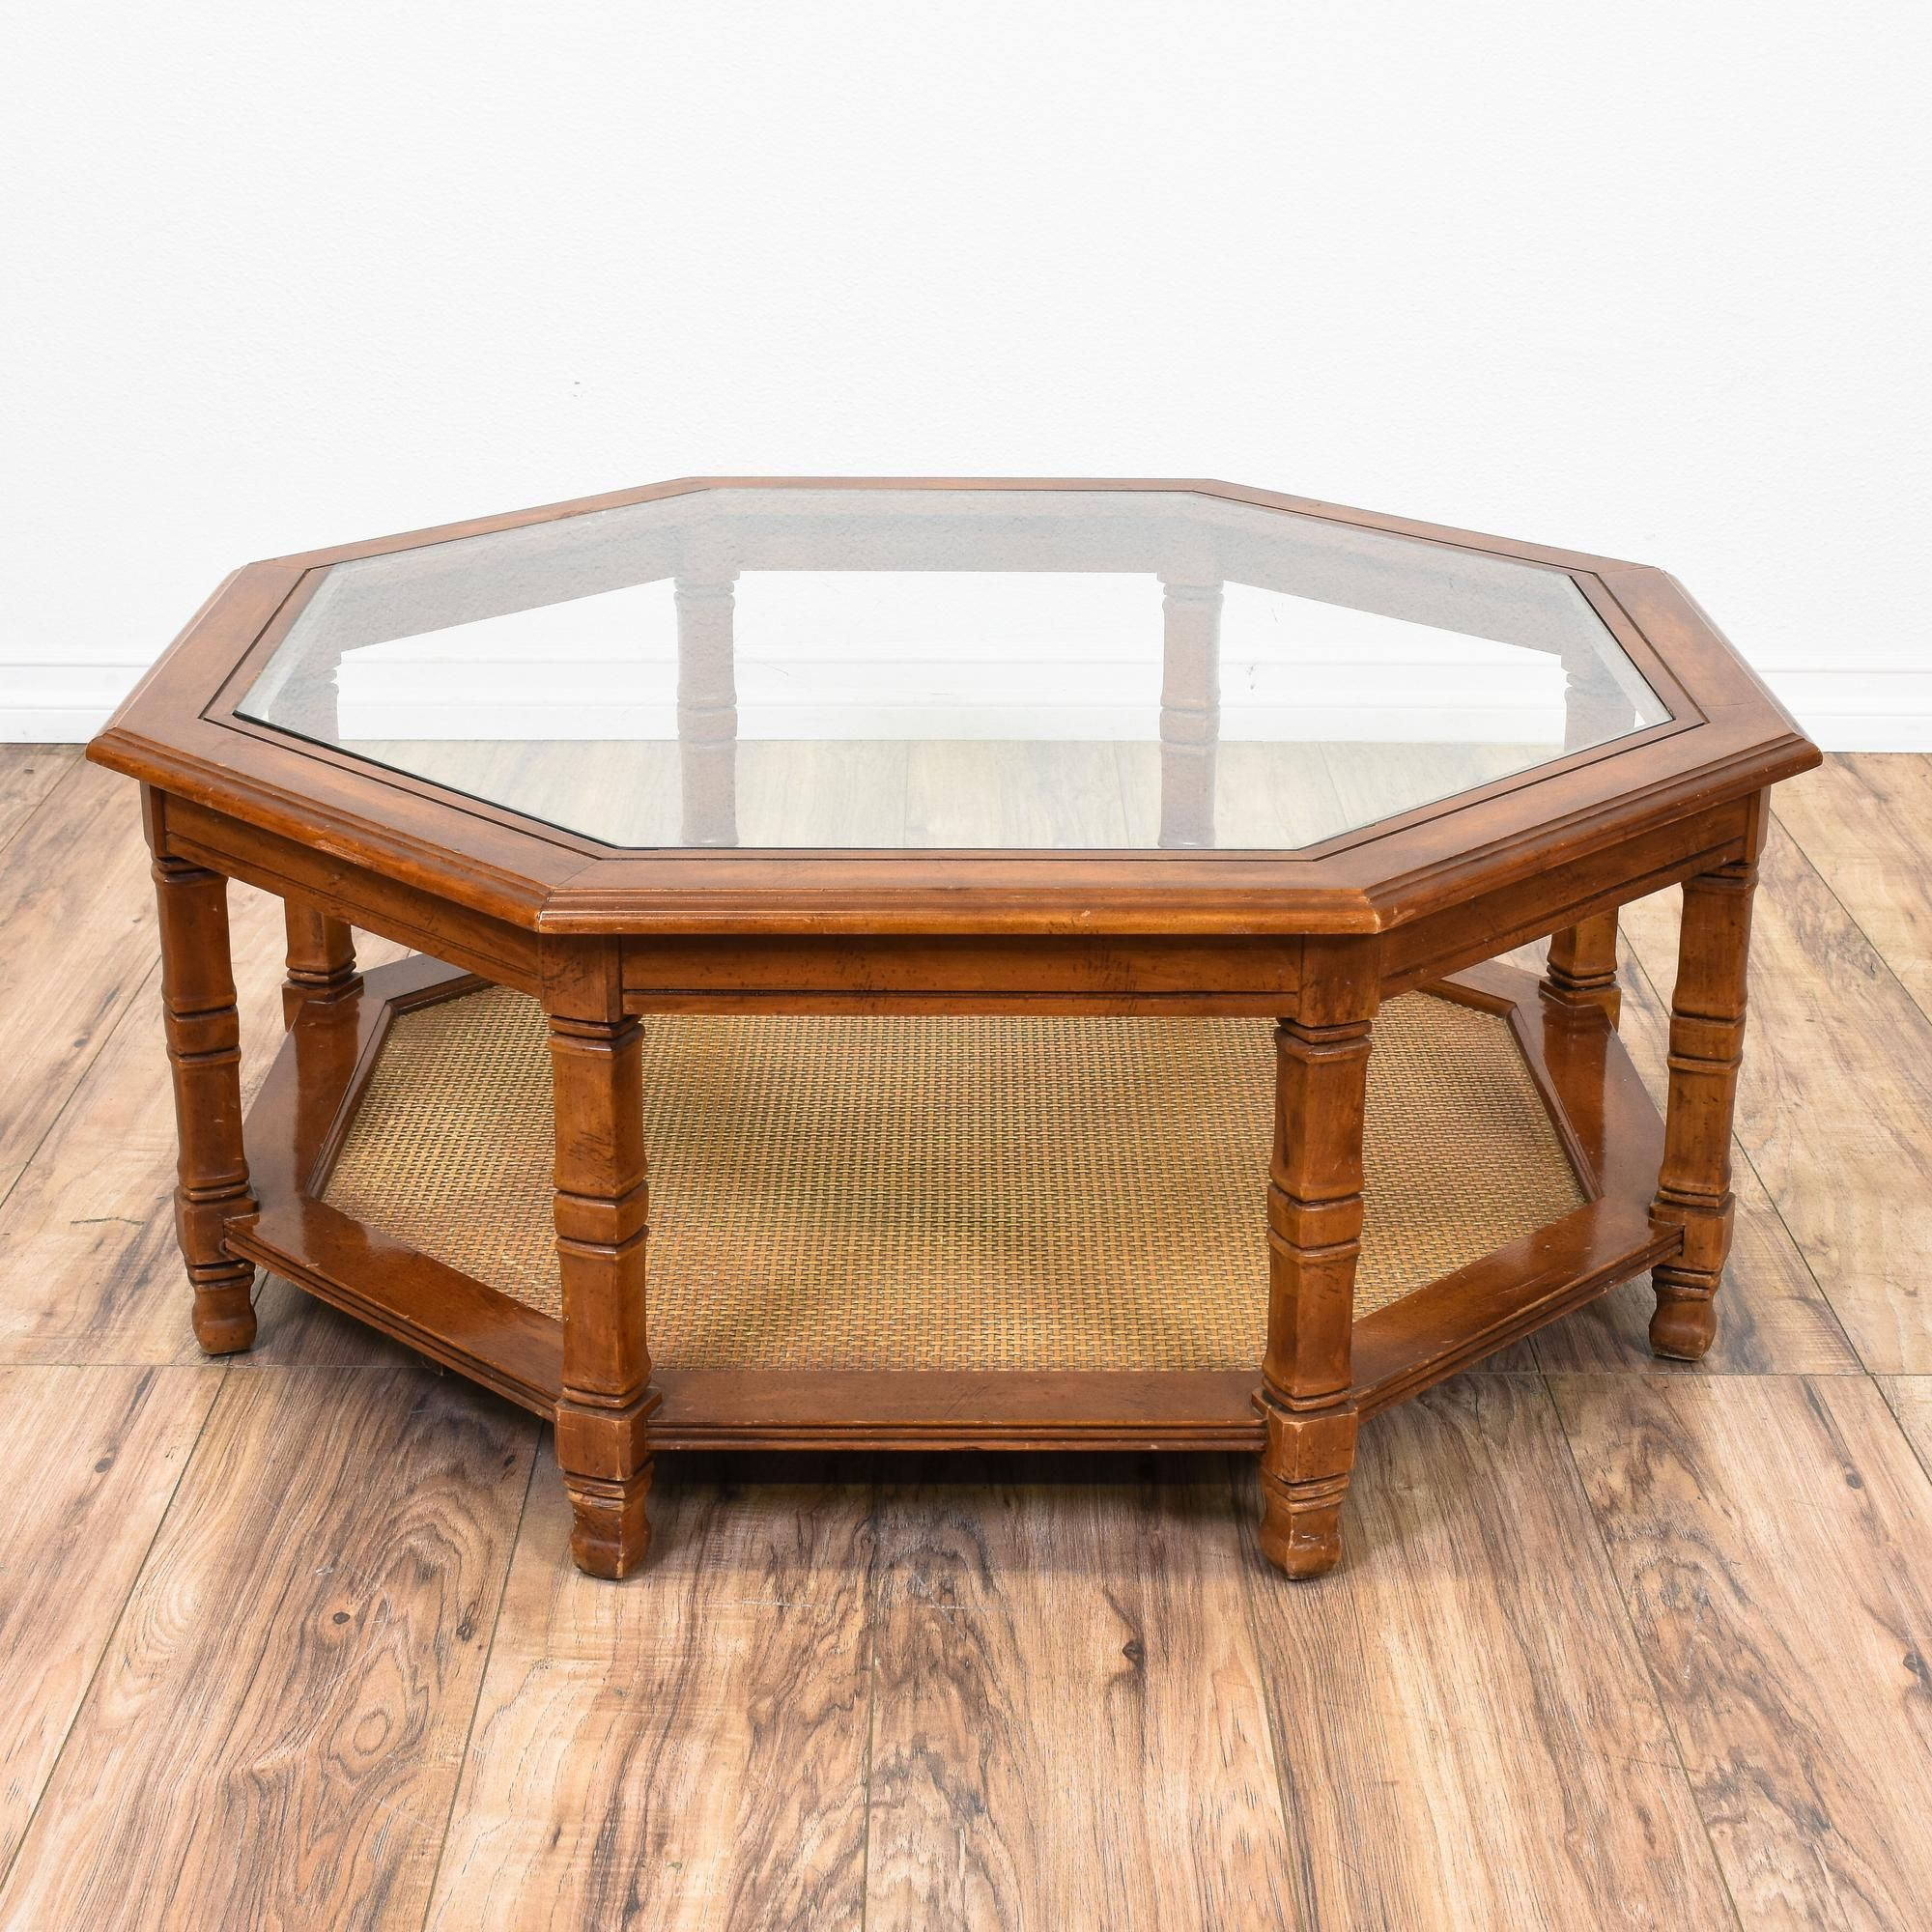 This octagon coffee table is featured in a solid wood with for Octagon glass top coffee table